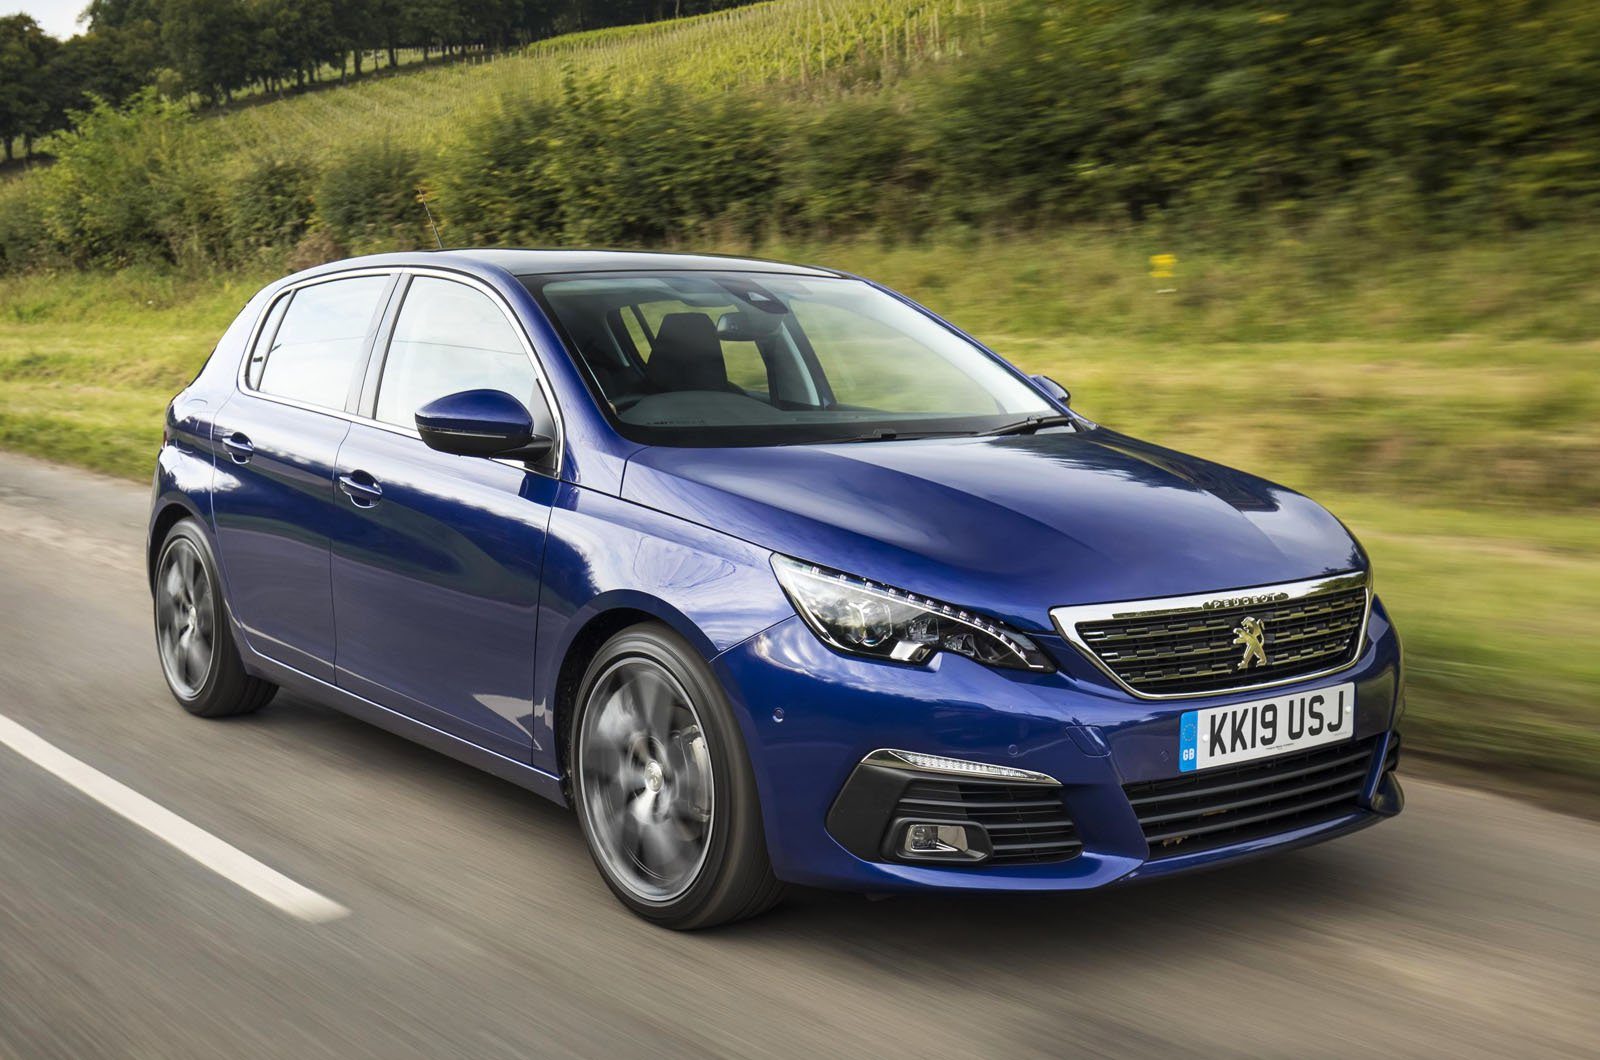 Peugeot 308 front - 19 plate